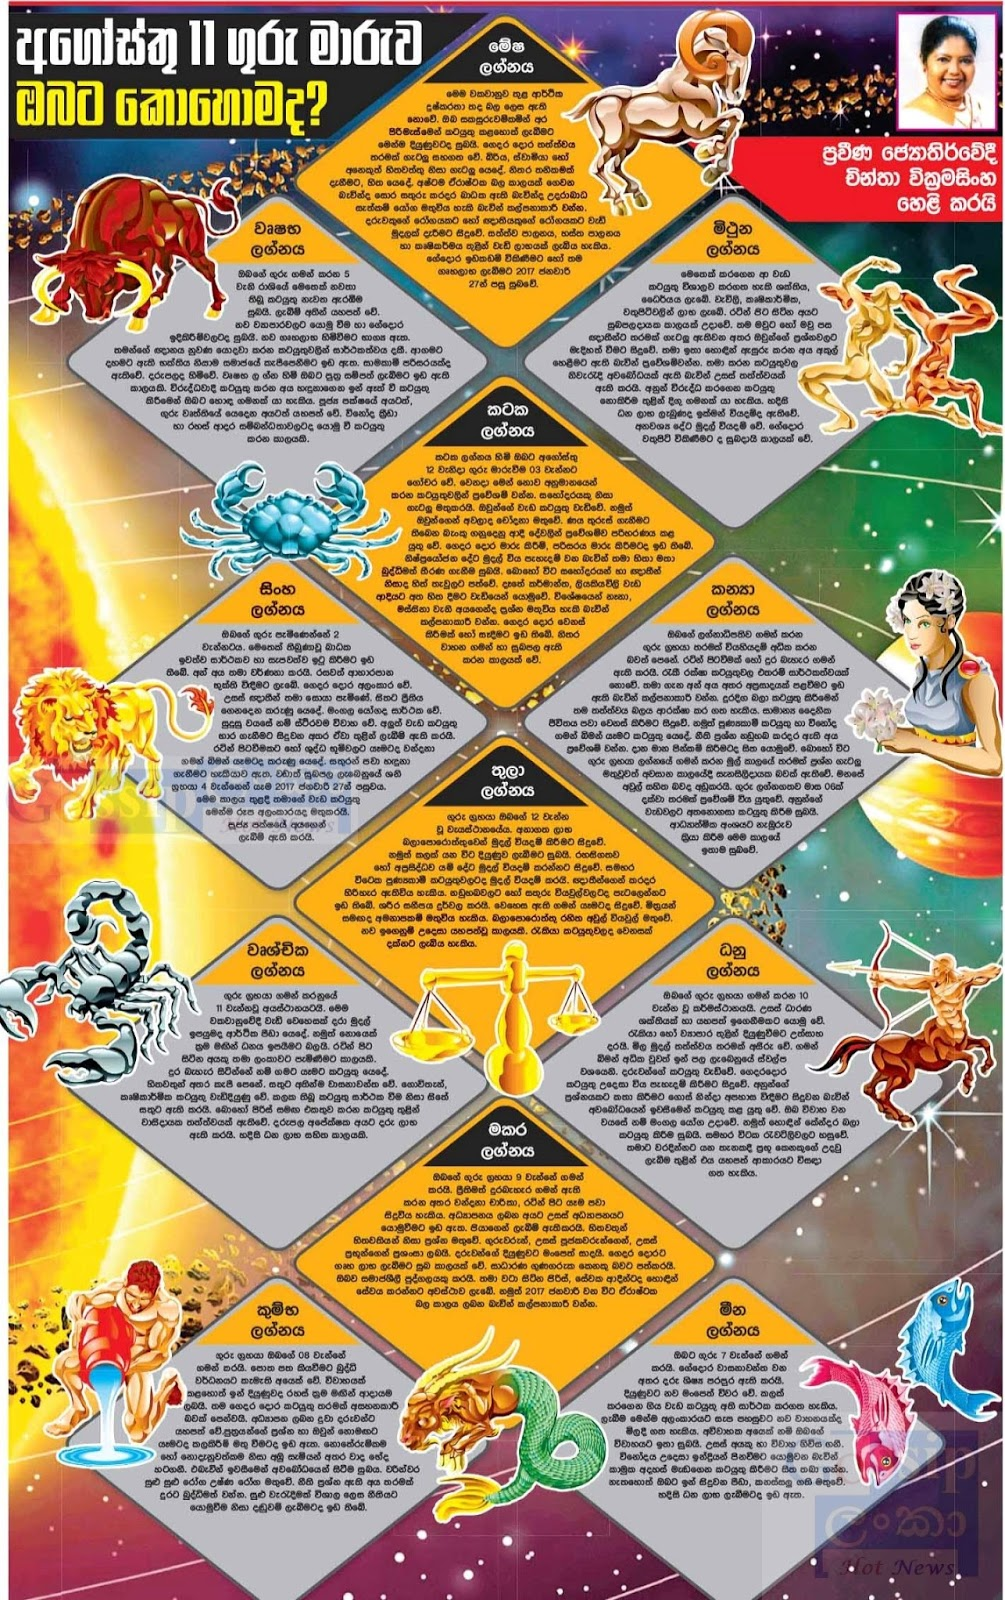 Horoscope predictions for Guru maruwa